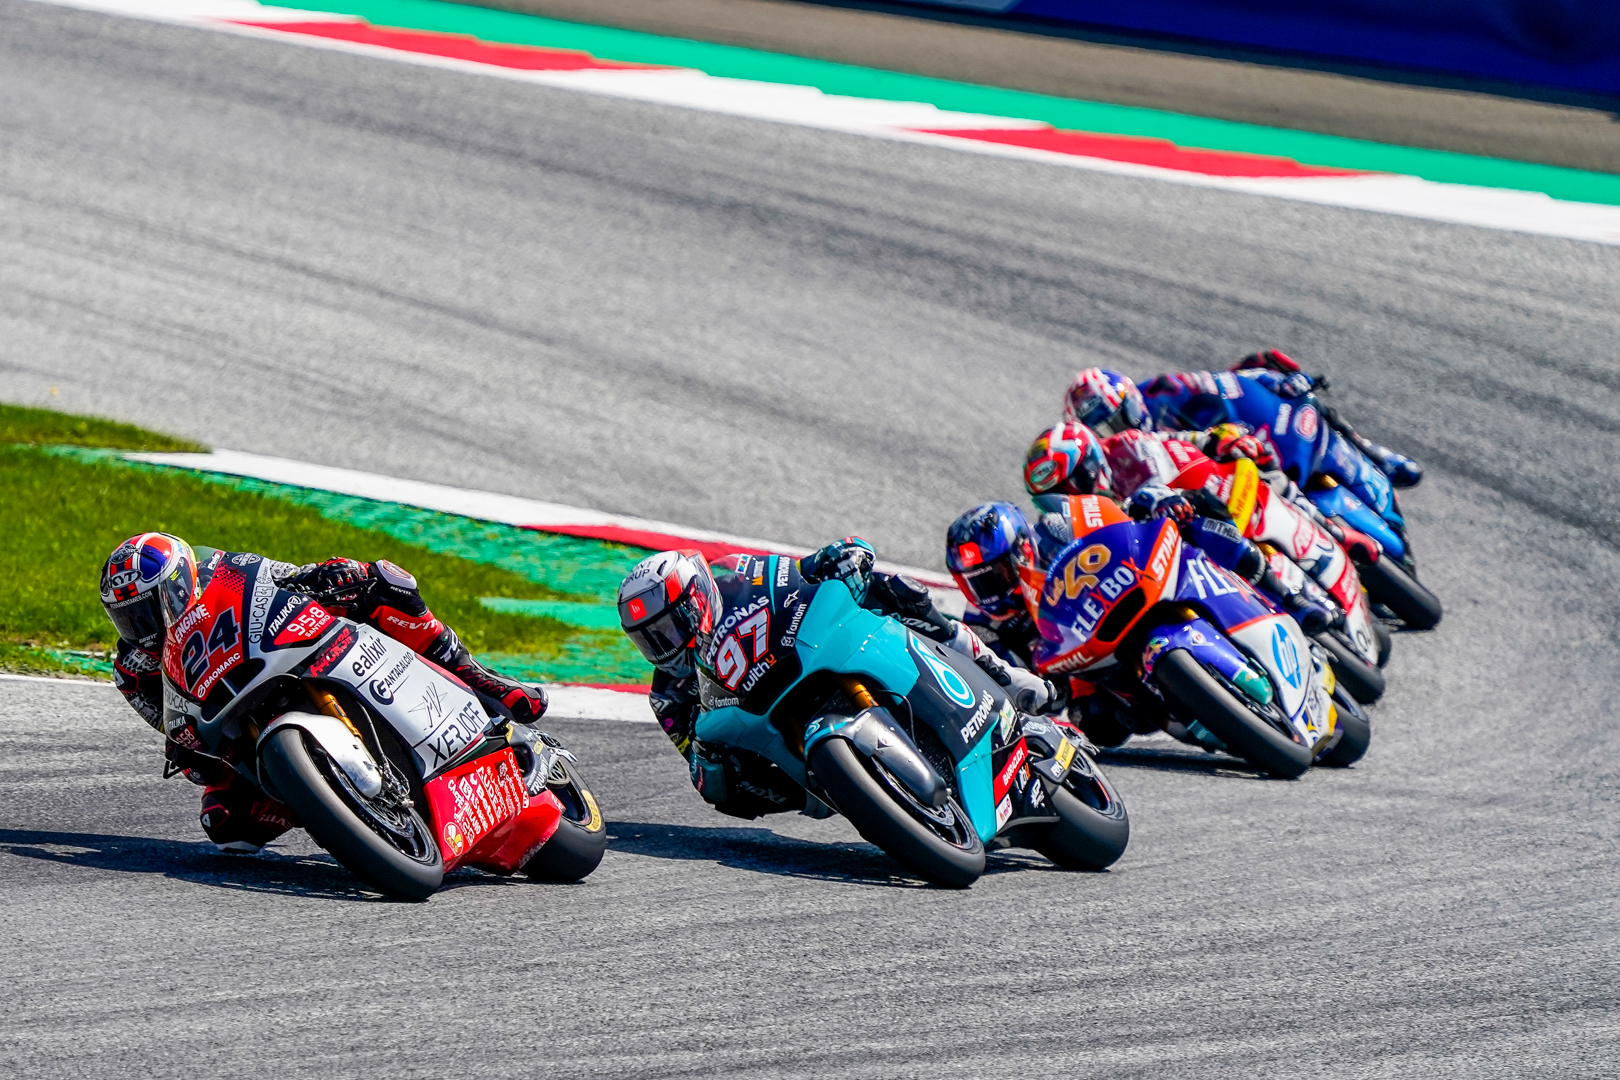 Corsi recovers 8 positions in the race, Baldassarri unfit stays in the box #AustrianGP